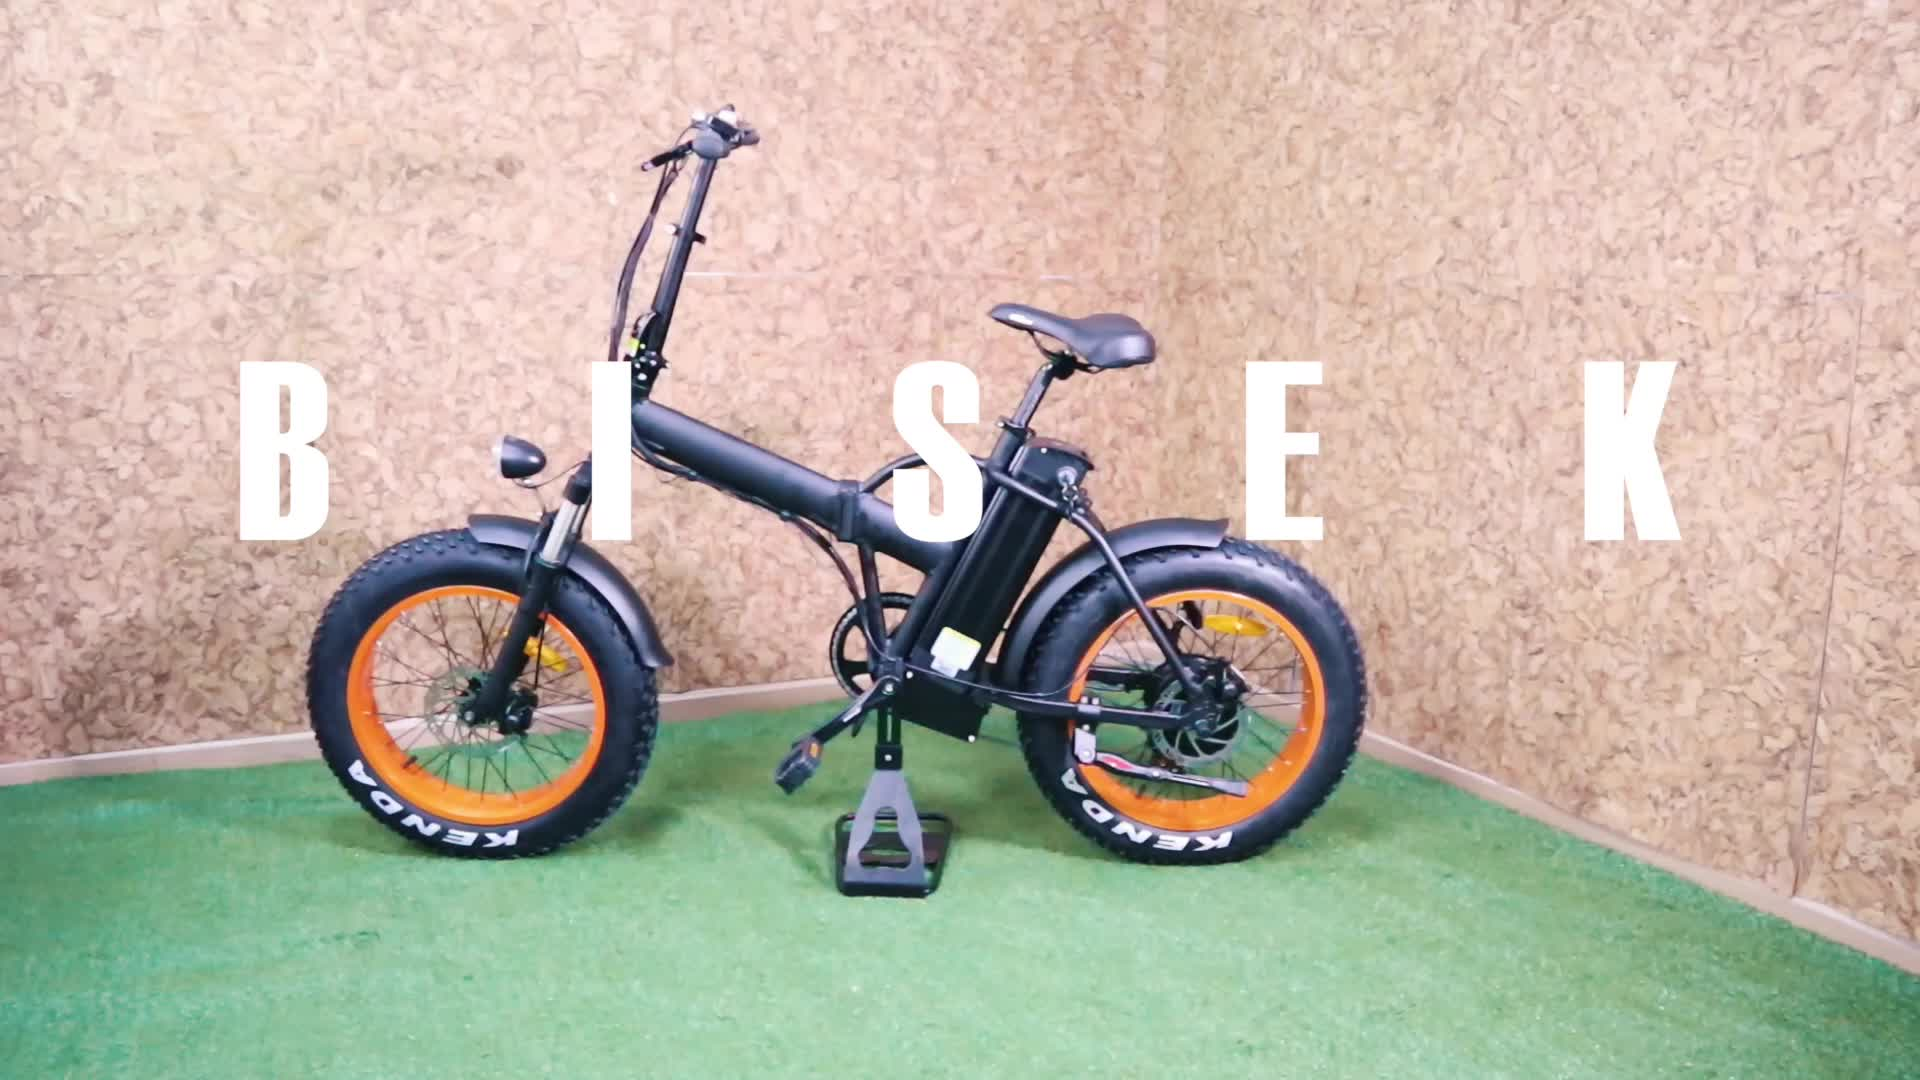 Strong alloy frame electric bicycle small folding electric bicycle fat tire e bike